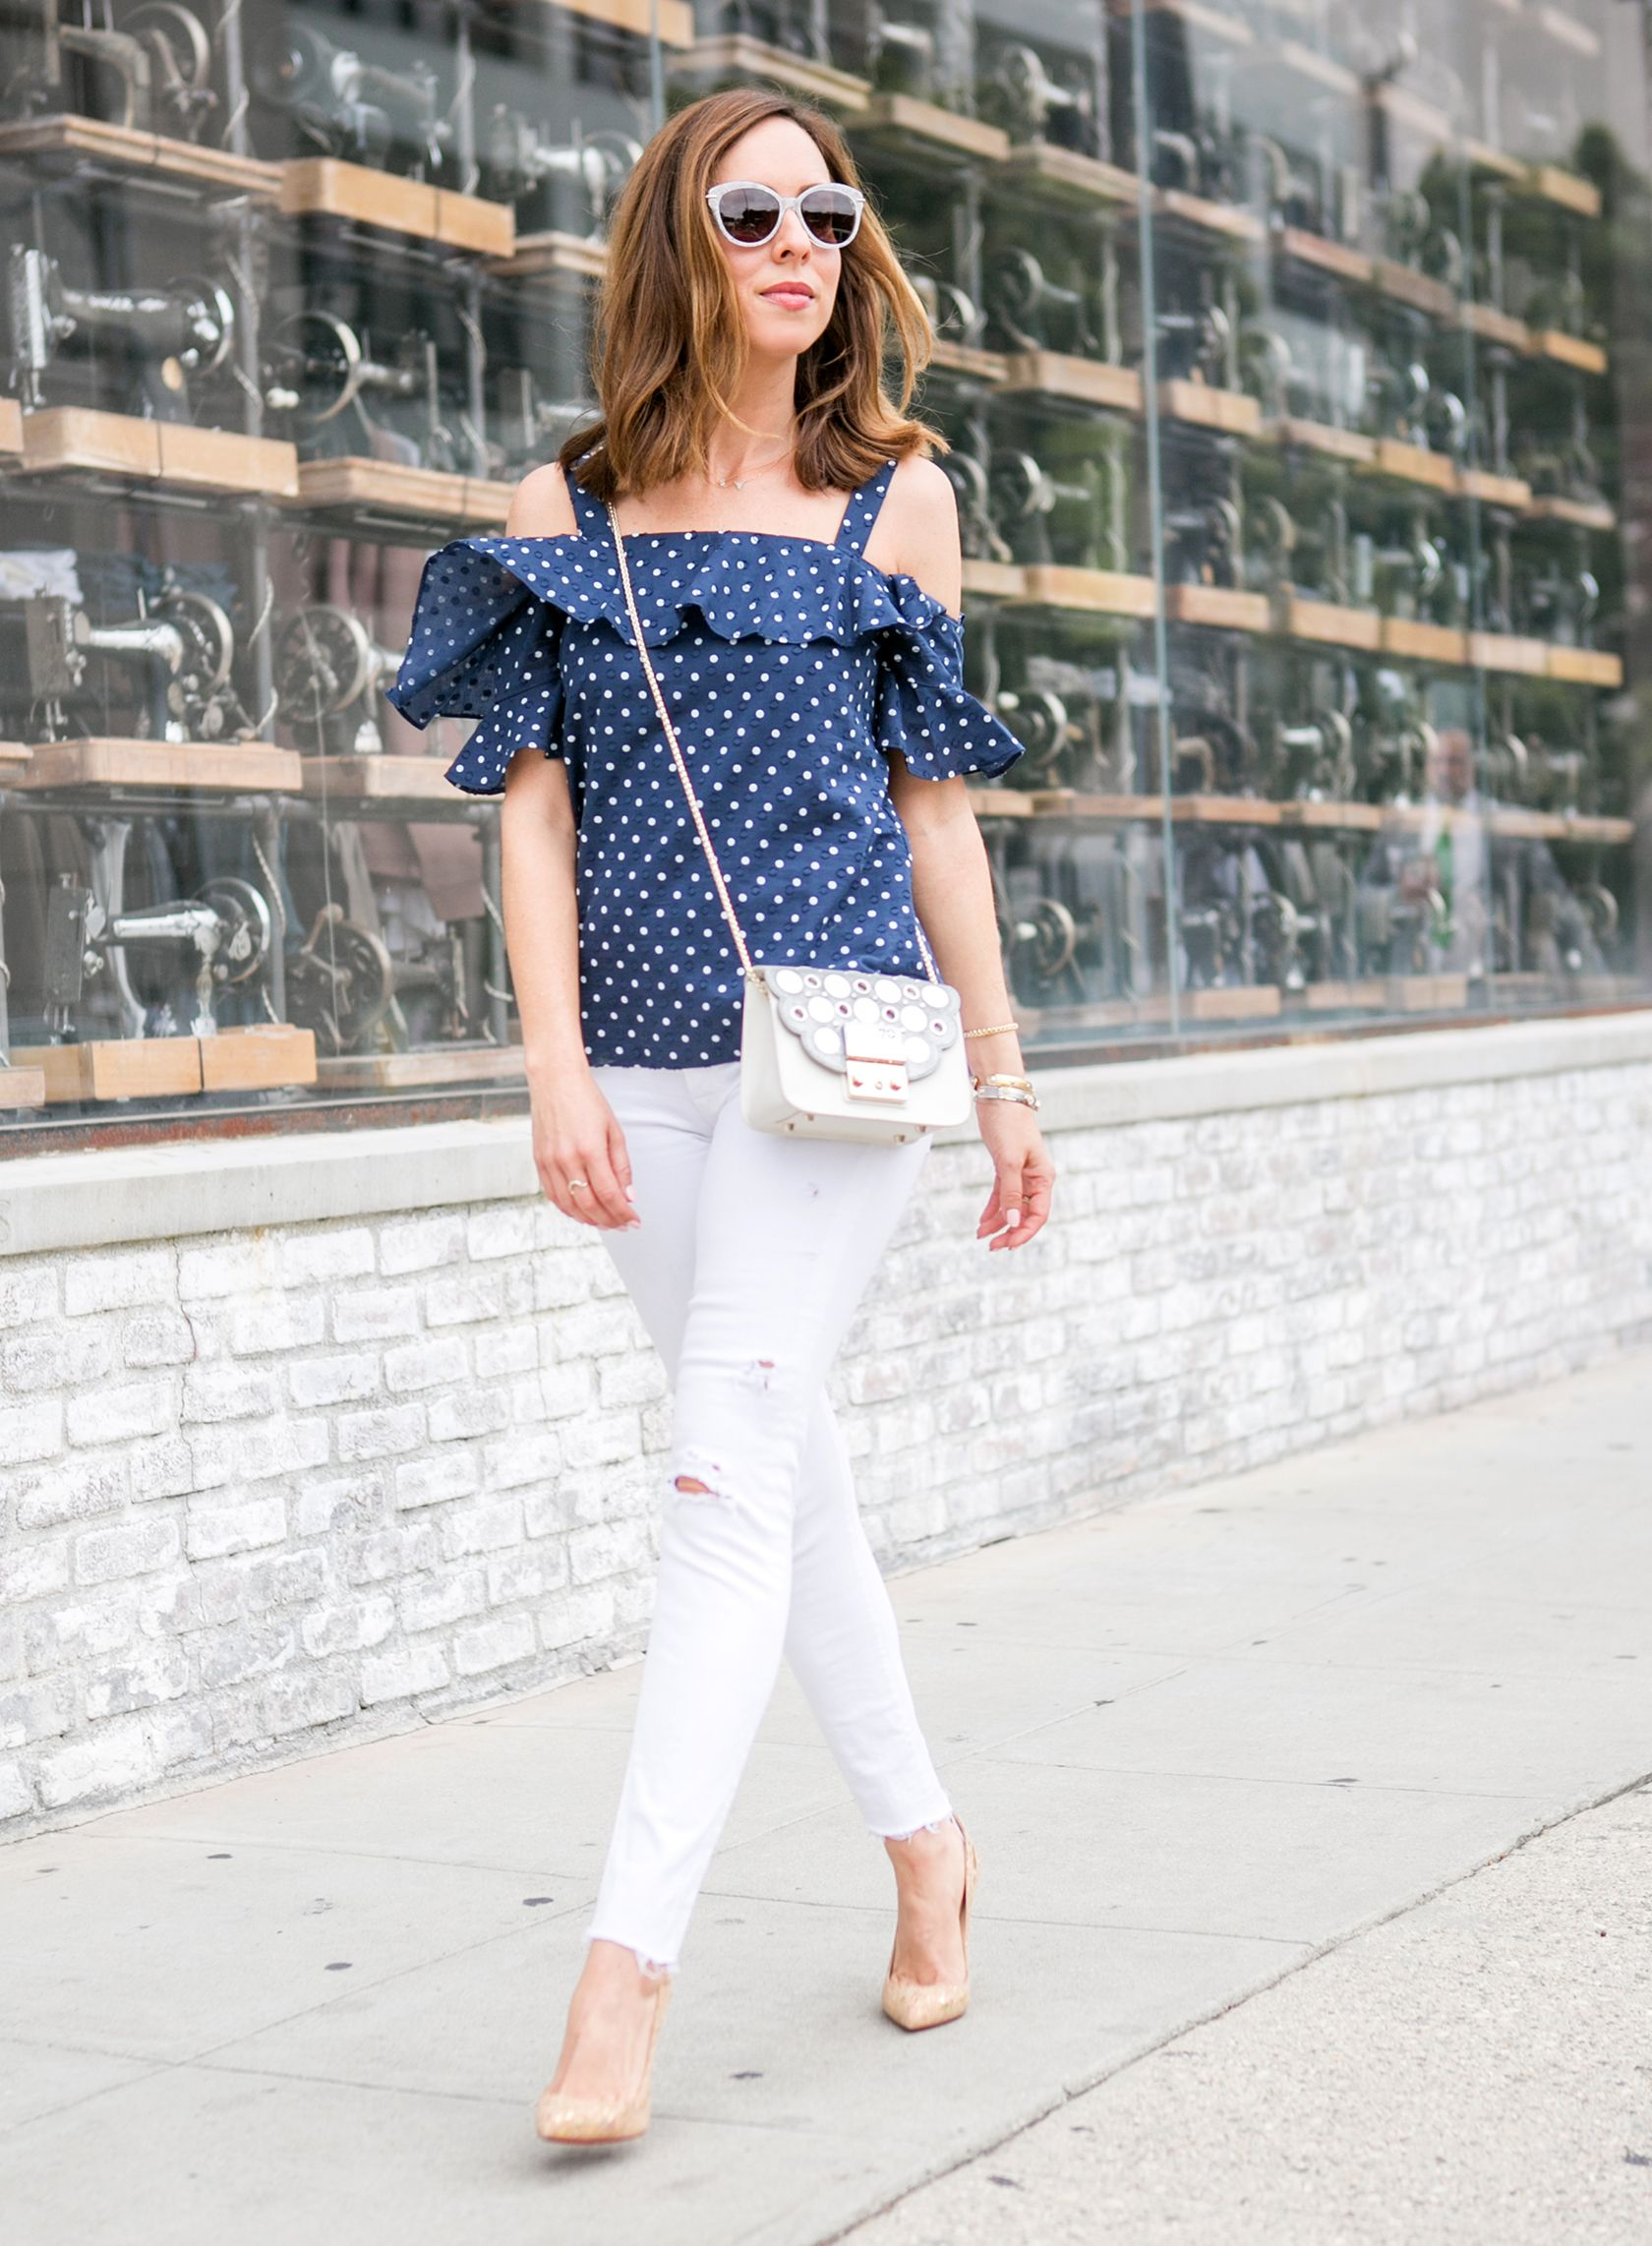 d32a31596e81 Sydne Style - Los Angeles fashion blogger Sydne Summer street-styles Polka  Dots for Casual Friday.